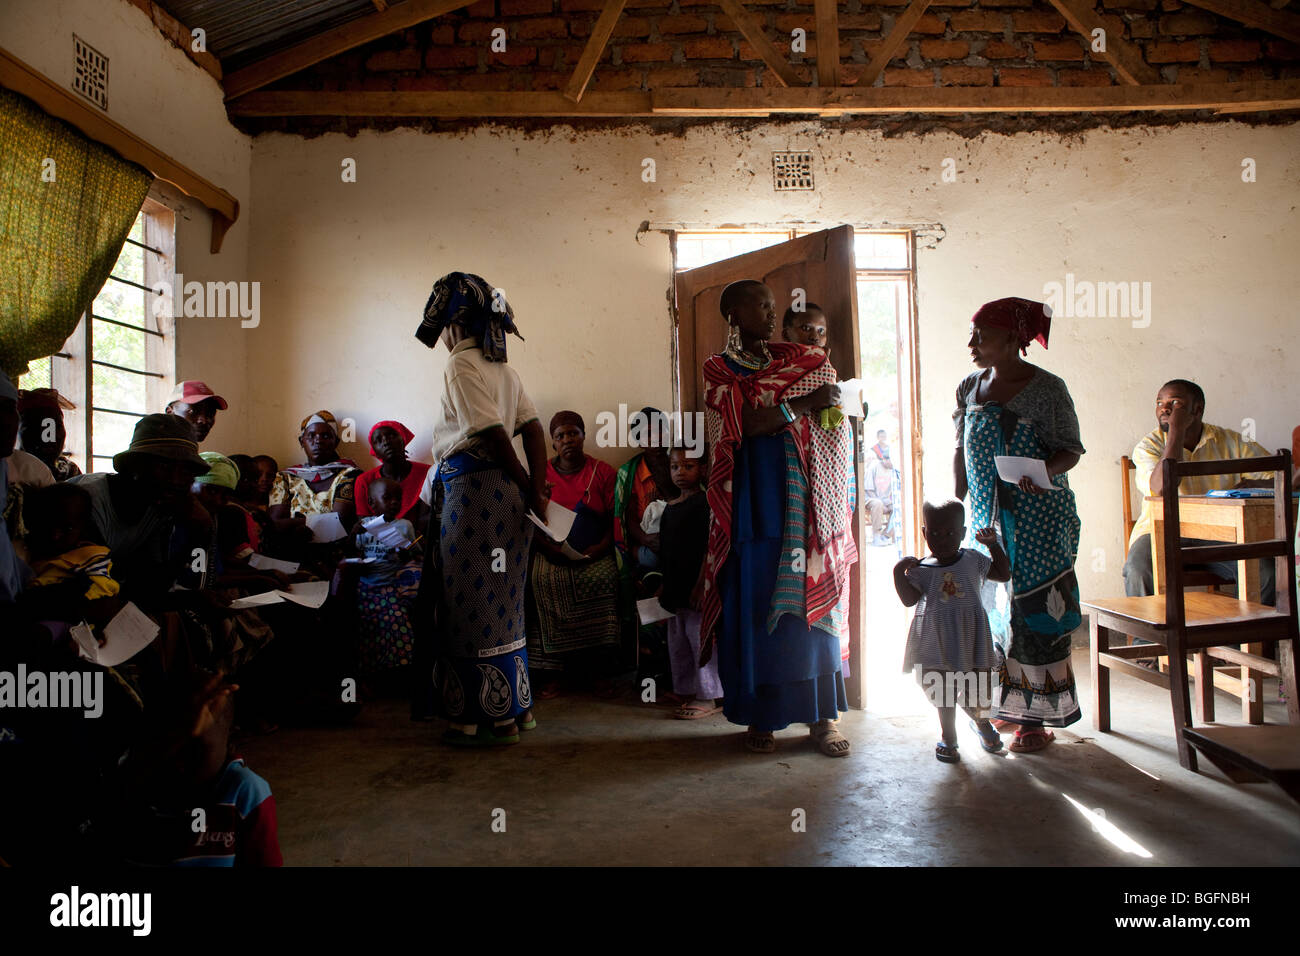 Patients wait to be seen by a doctor at a medical dispensary in Tanzania: Manyara Region, Simanjiro District, Kilombero - Stock Image